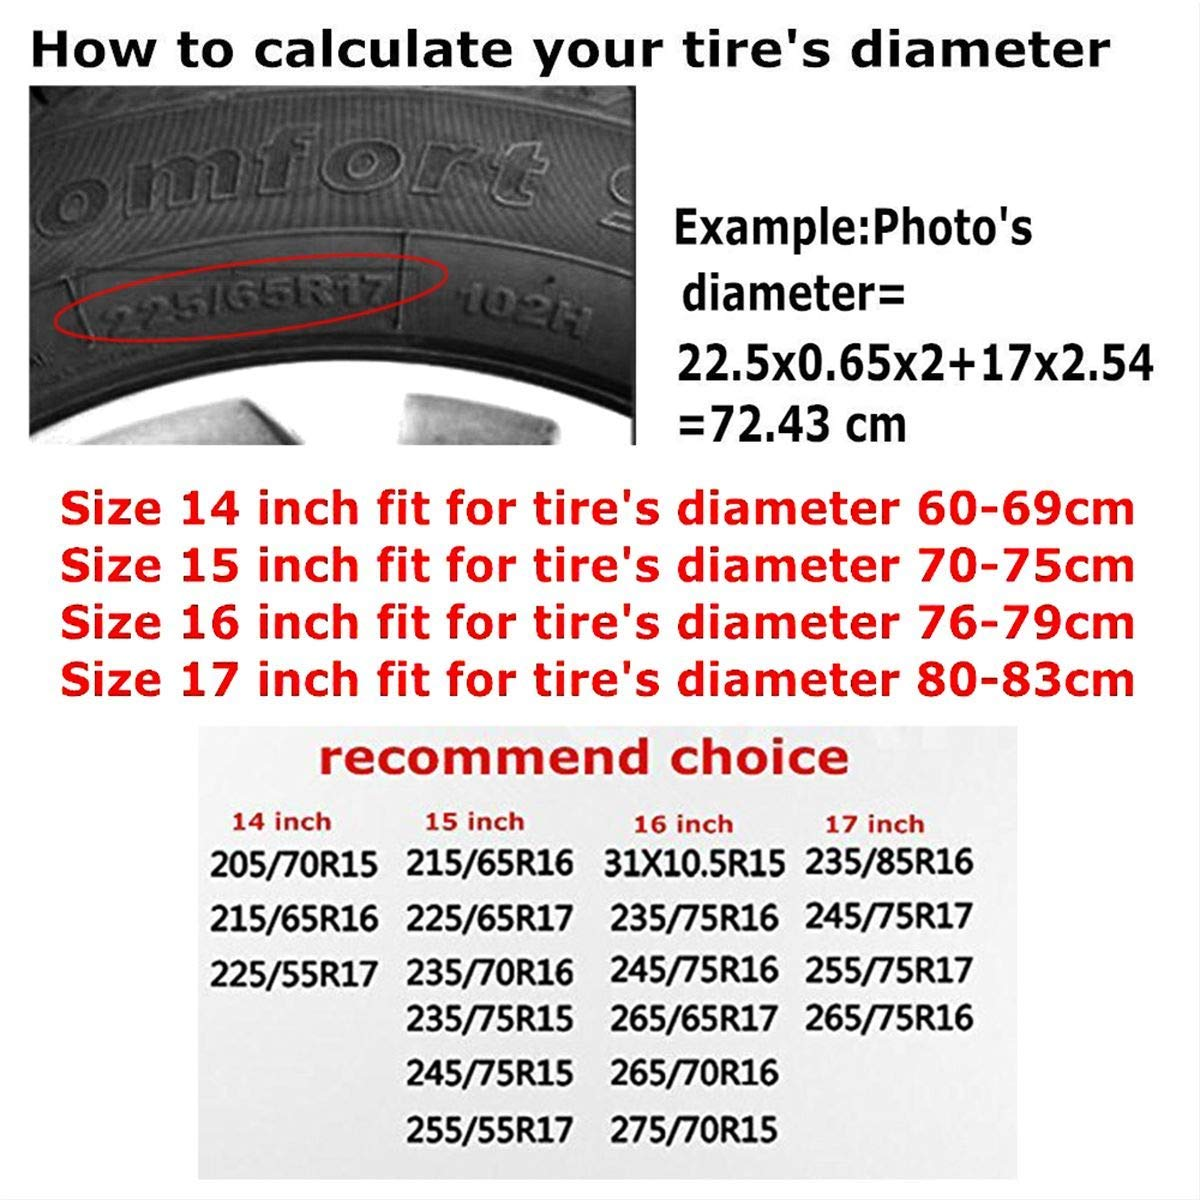 Fits Entire Wheel Xhayo Relax No One Cares Wheel Cover Wheelcover Spare Tyre Tire for SUV,RV,Trailer,Truck Wheel